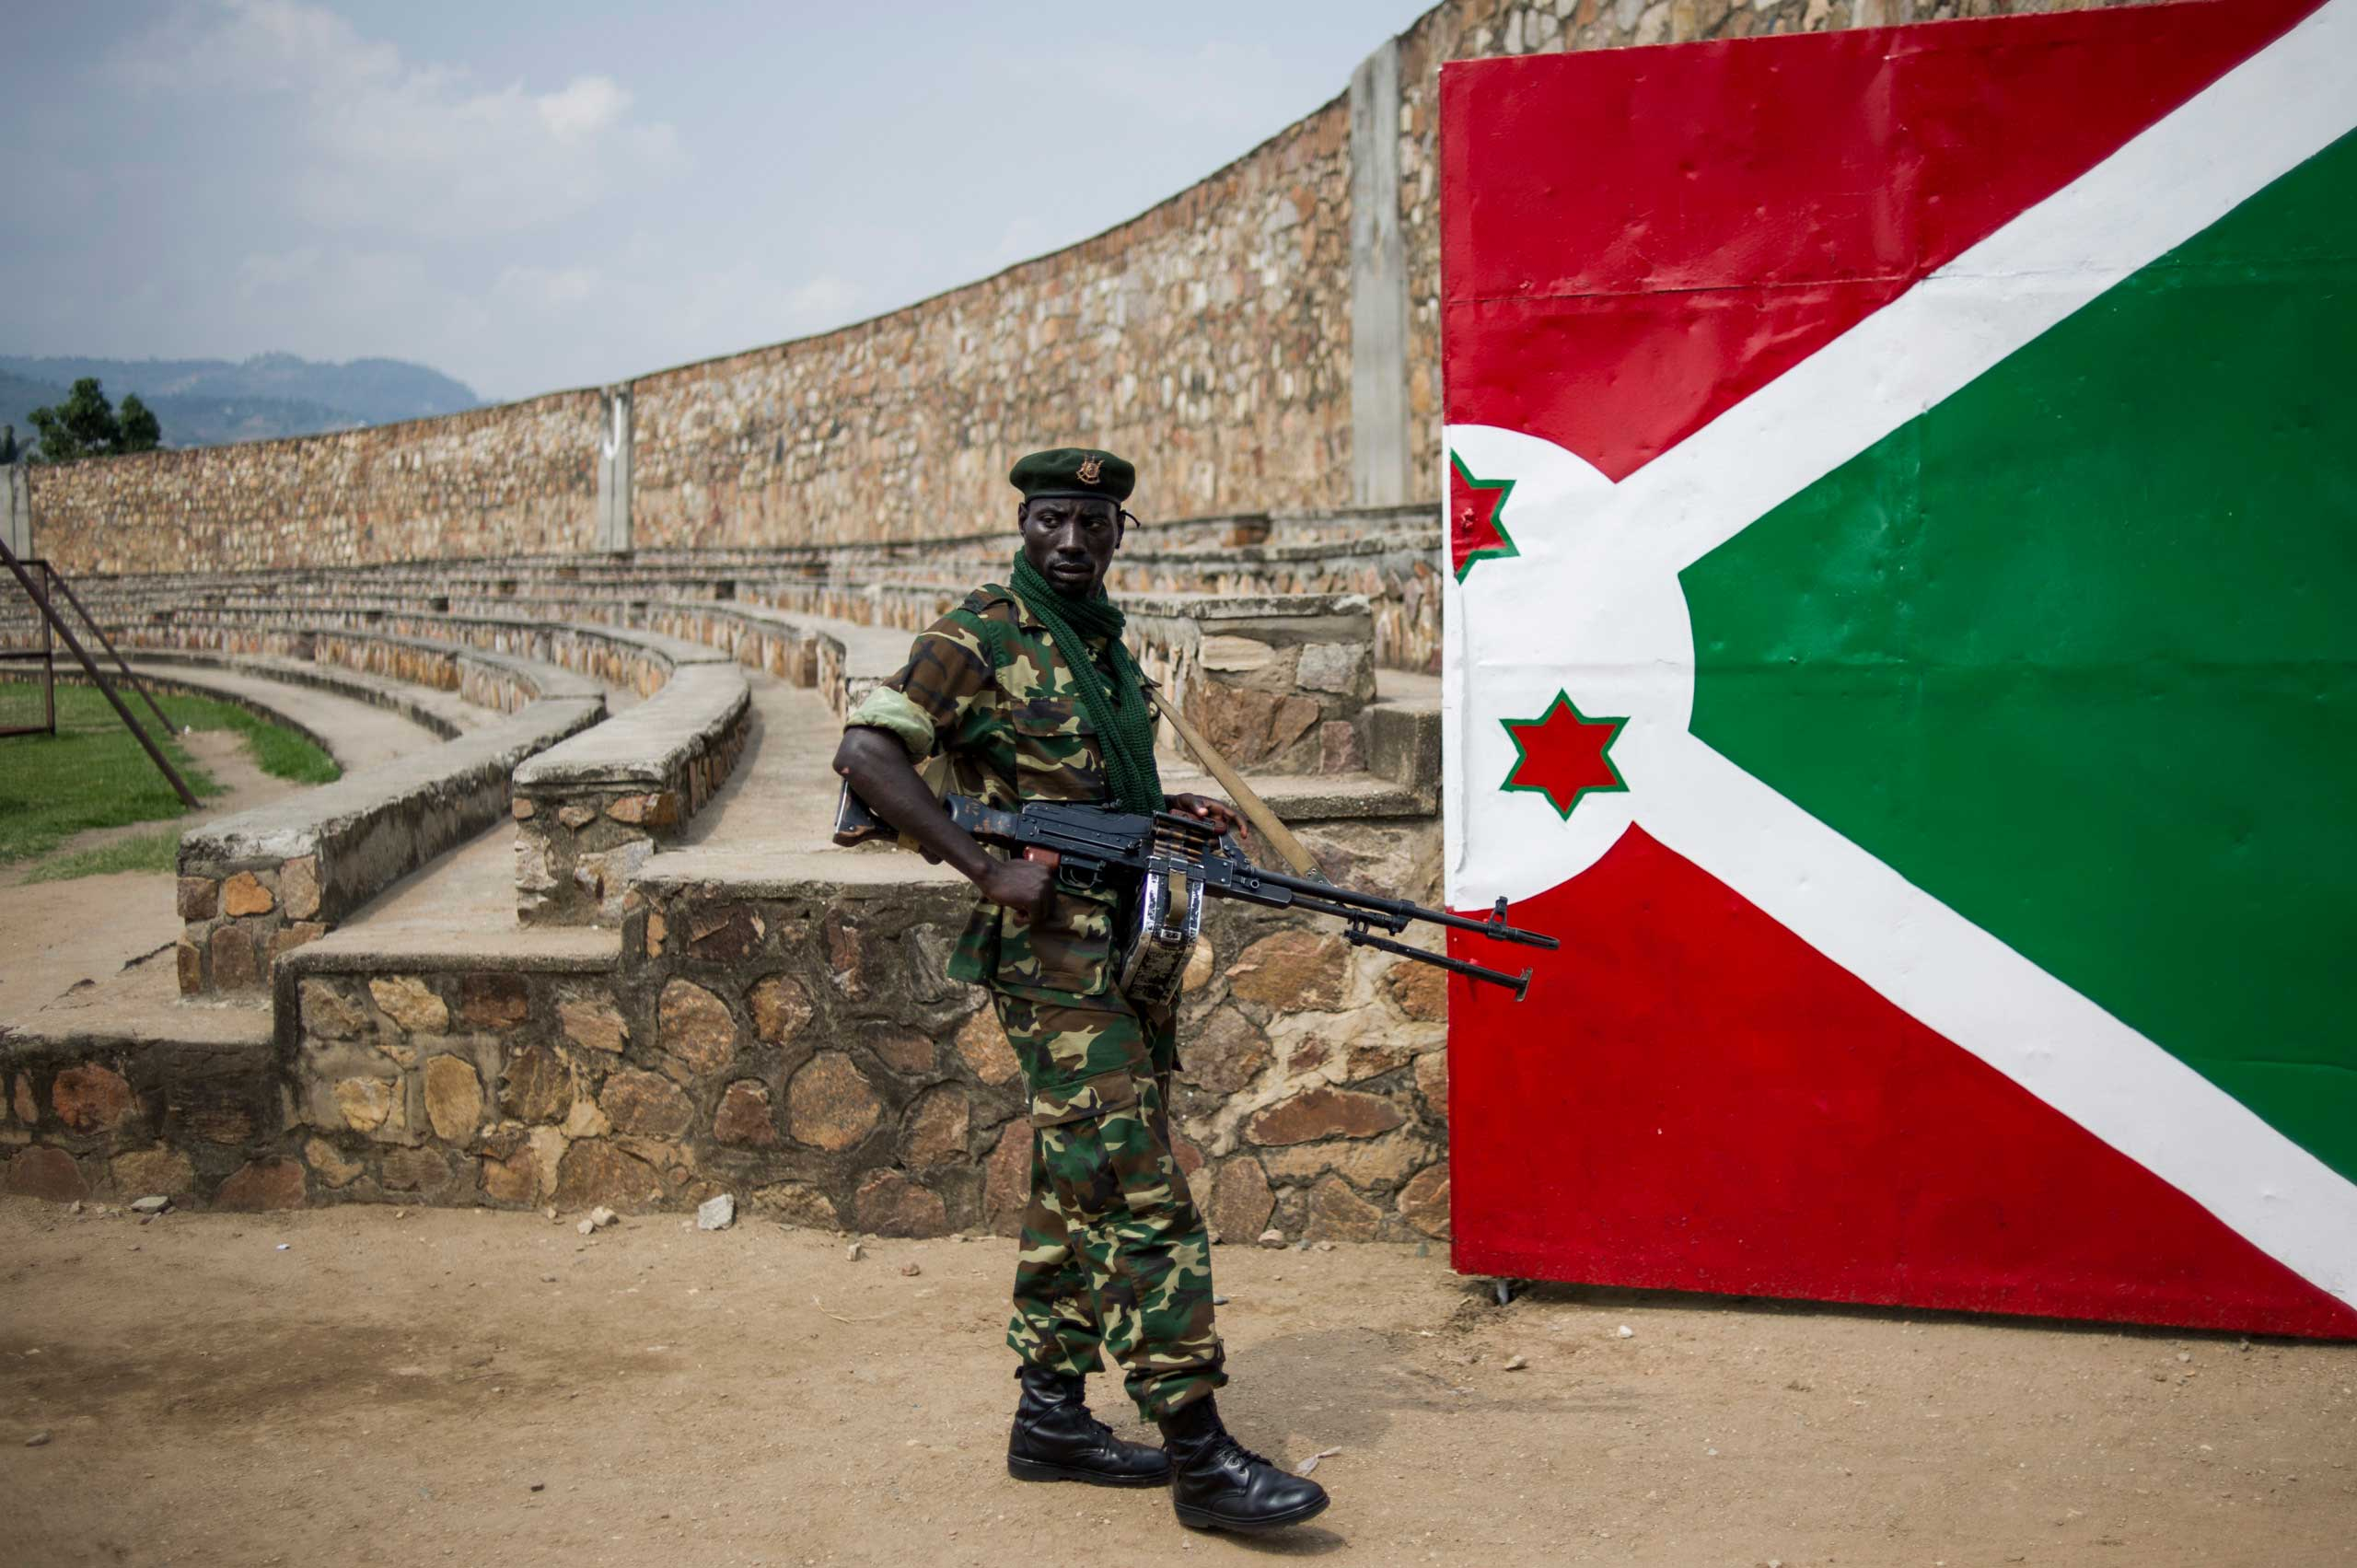 A soldier stands next to a gate painted with the Burundian flag at the Prince Rwagasore Stadium in Bujumbura, on June 27, 2015, during rehearsals for Independence Day celebrations on July 1.